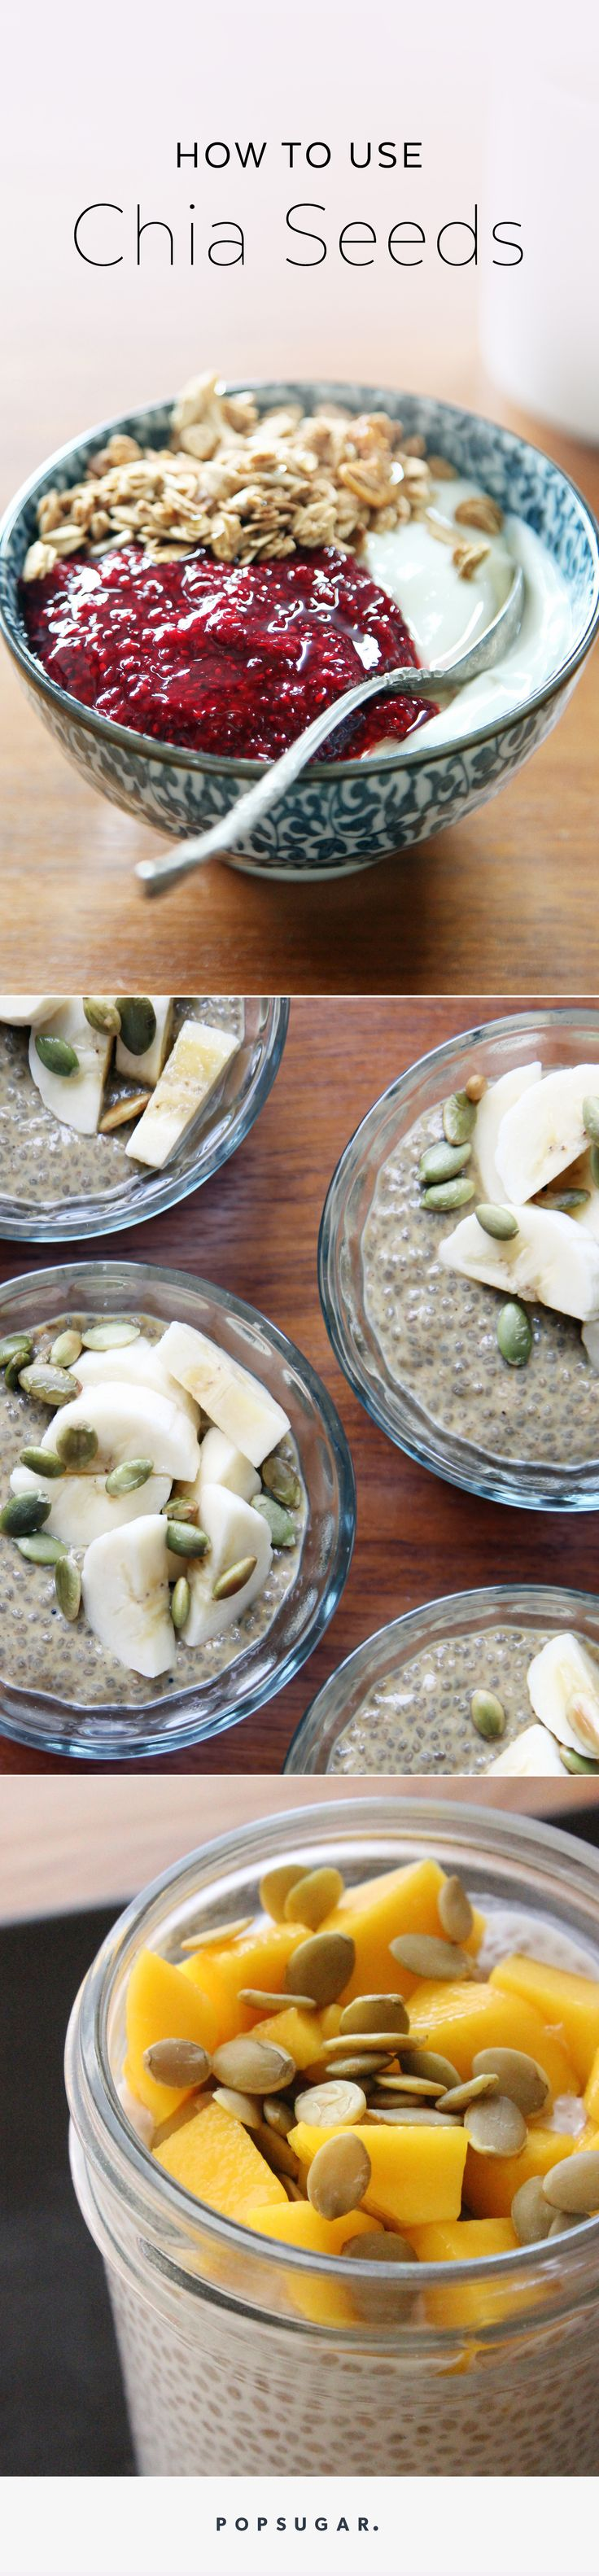 So you know chia seeds are healthy and good for you, but do you know how to use them? Learn all the ways to eat chia seeds; these simple ideas will incorporate them into your diet, from puddings to egg replacers, jams and weight-loss boosting overnight oats, to healthy breakfast recipes.